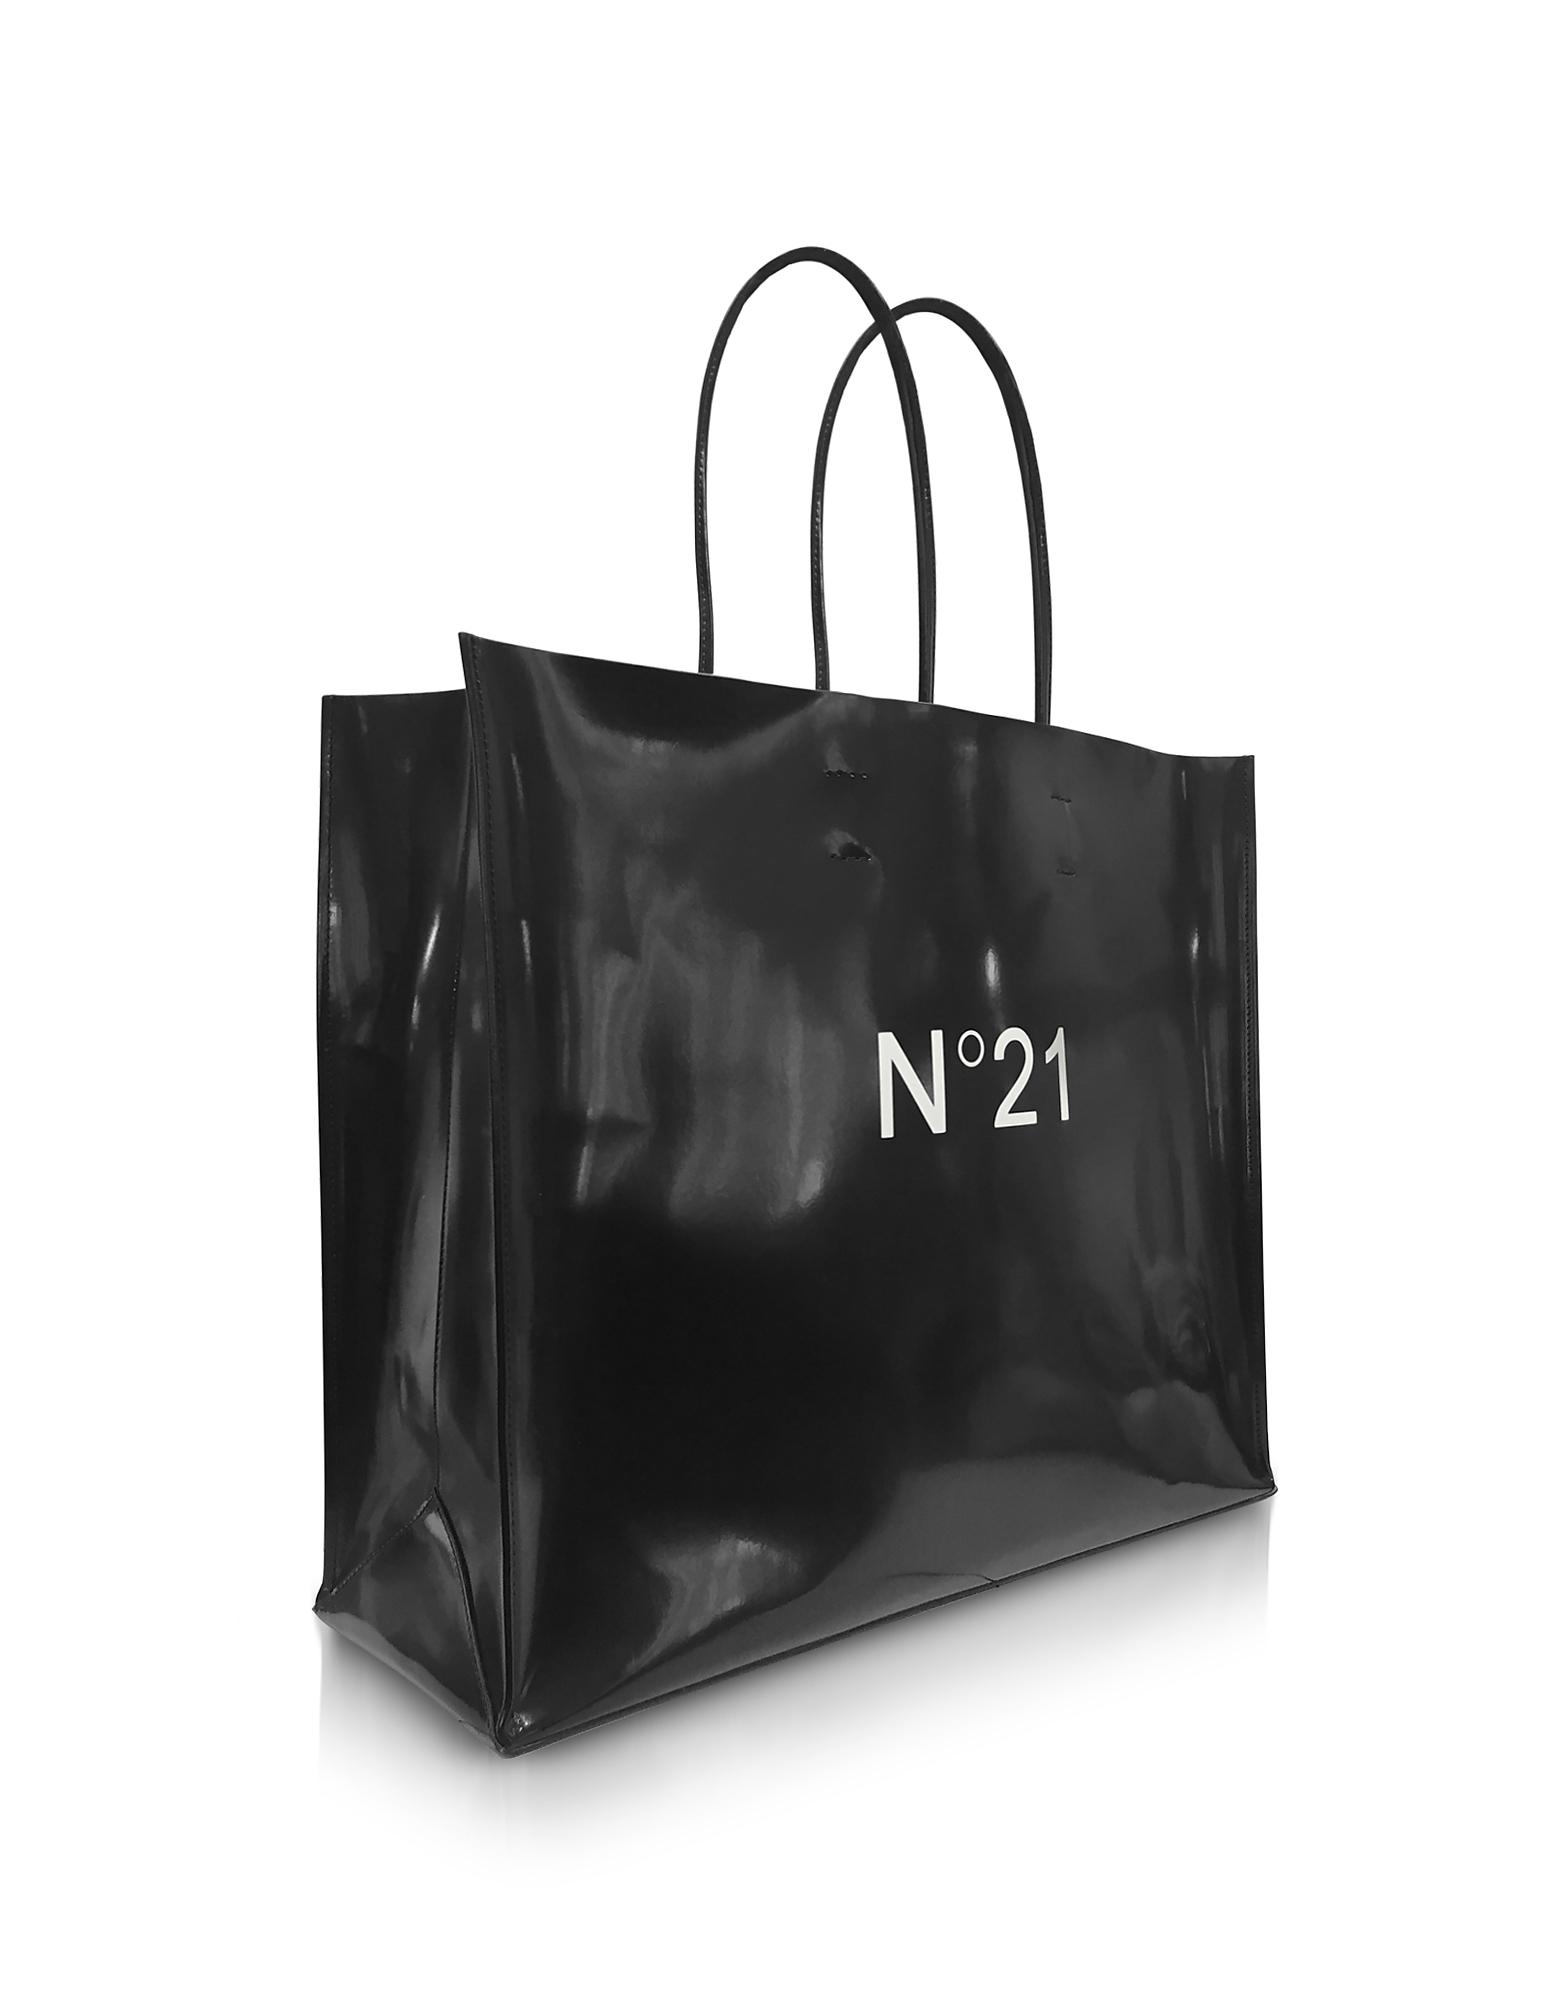 5185196df7 Lyst - N°21 Large Shopping Bag in Black - Save 28.888888888888886%